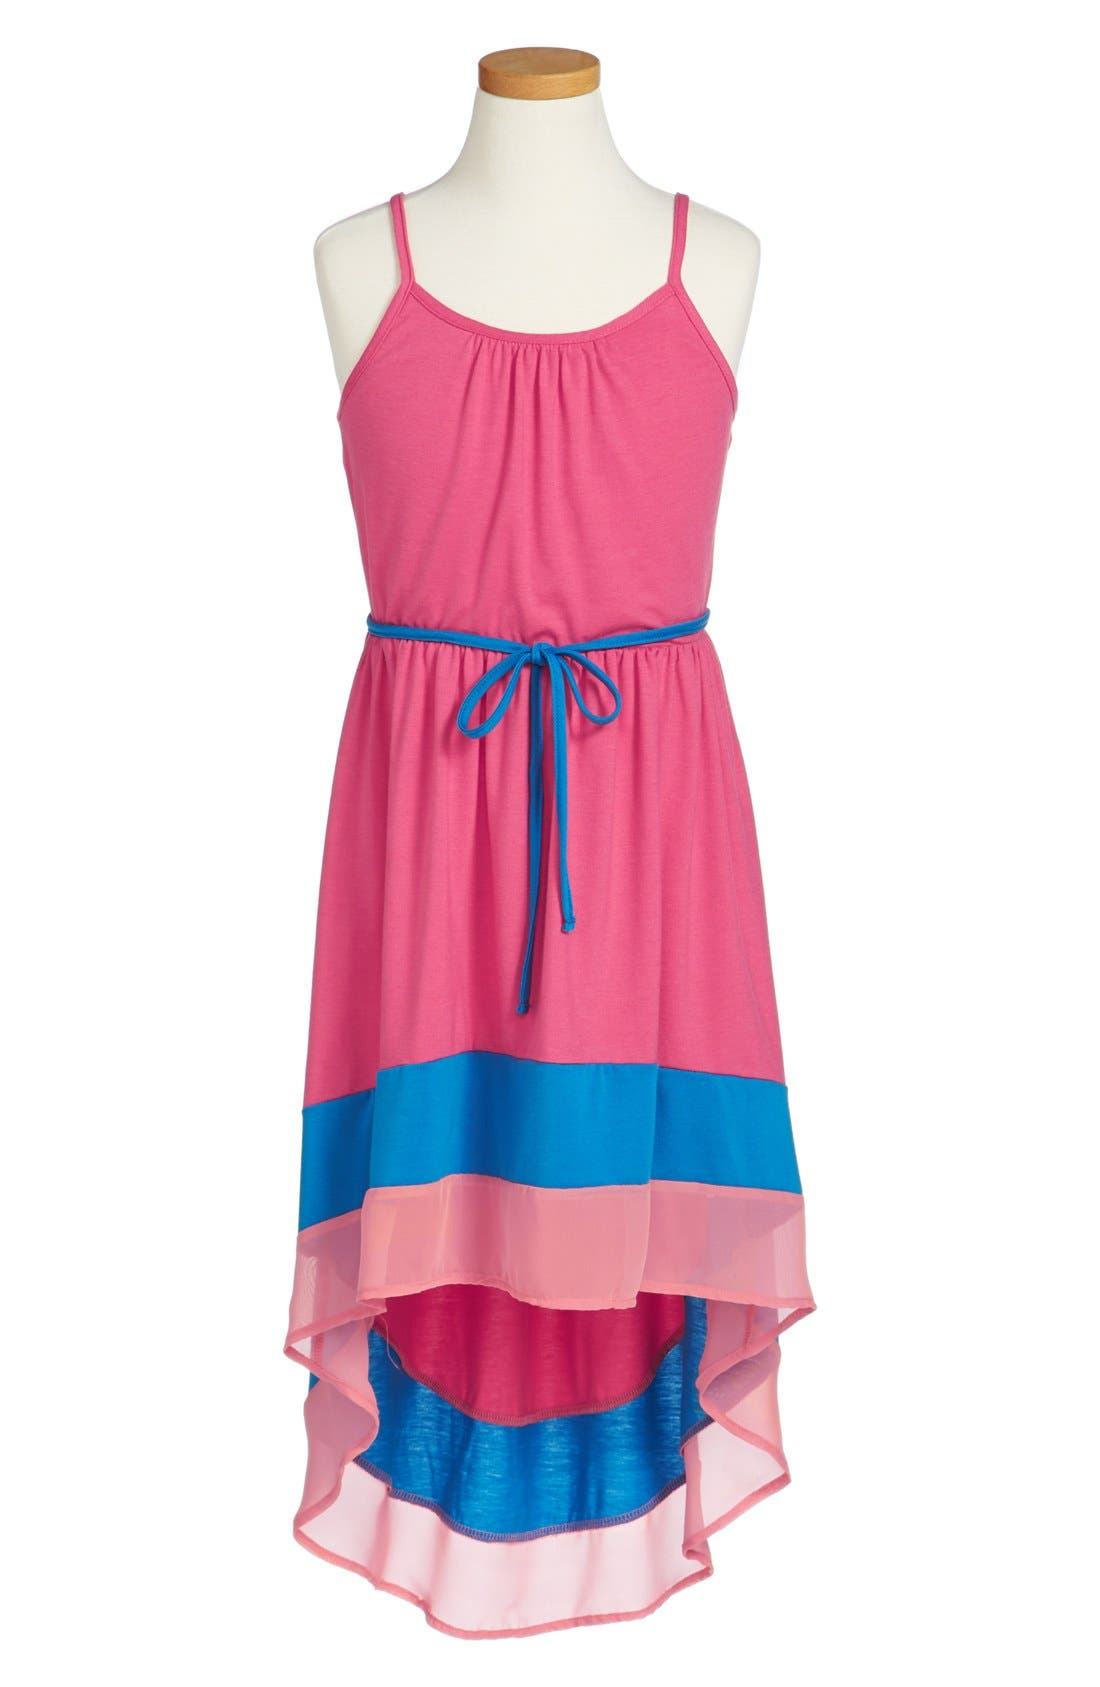 Alternate Image 1 Selected - Zunie Colorblock High/Low Dress (Big Girls)